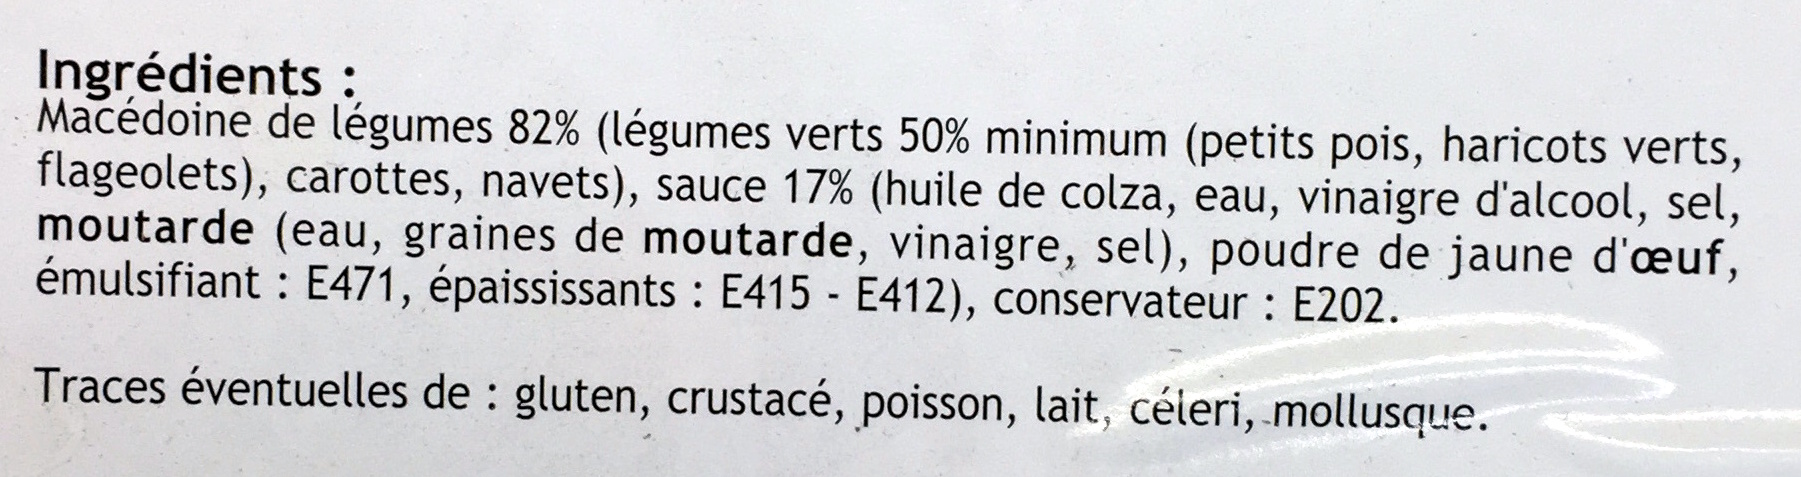 Macédoine de Légumes - mayonnaise - Ingredients - fr